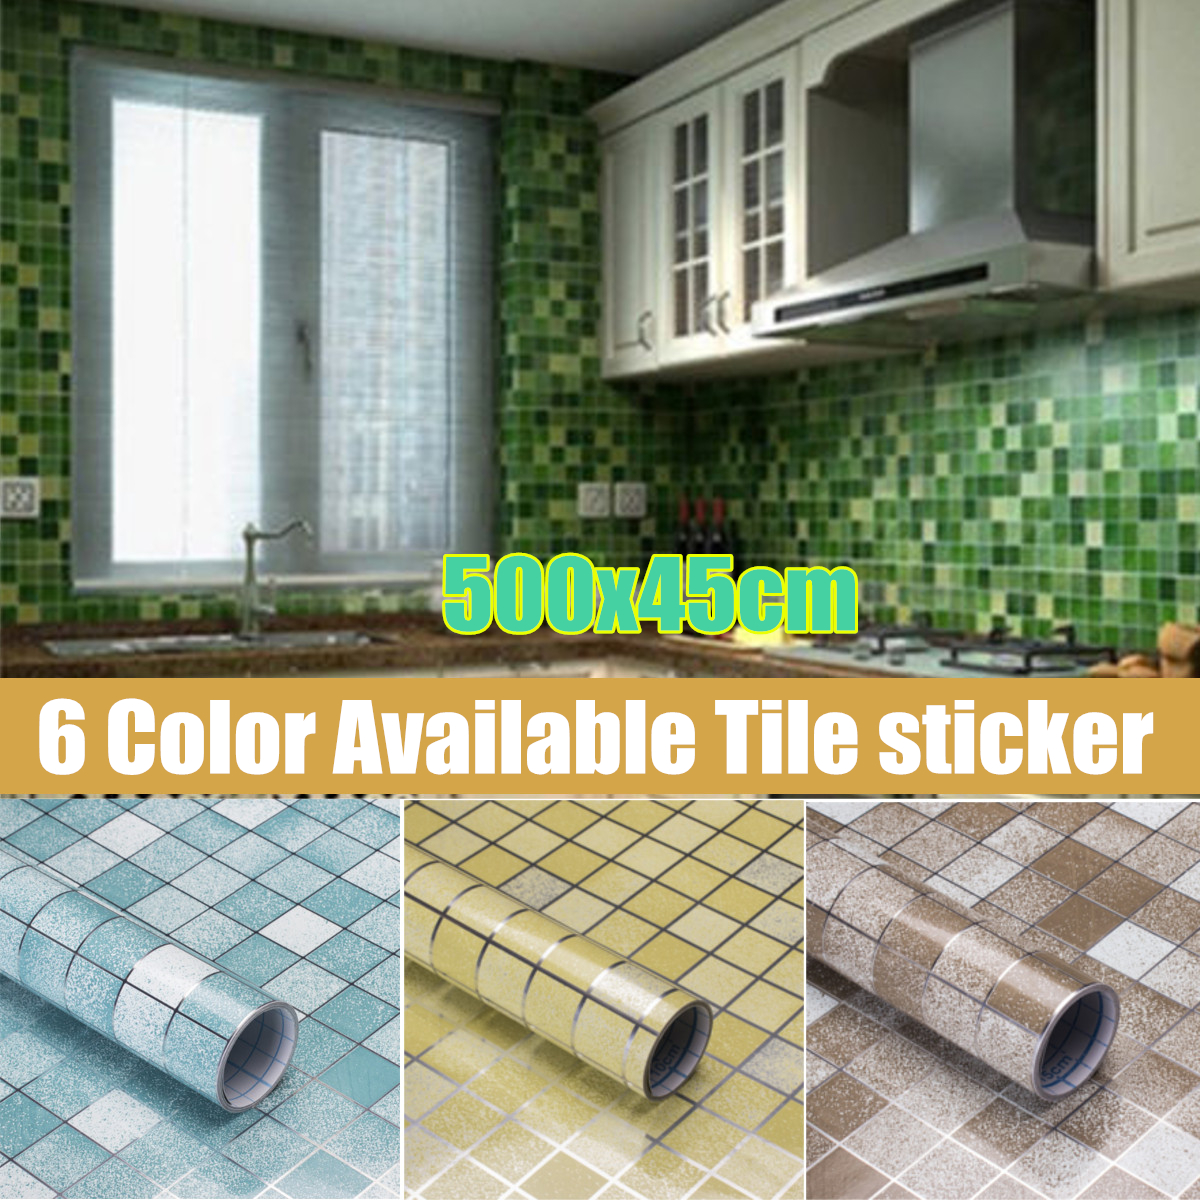 45x500cm Waterproof Moroccan Wall Tile Sticker Decal Anti Oil Kitchen Home Decor